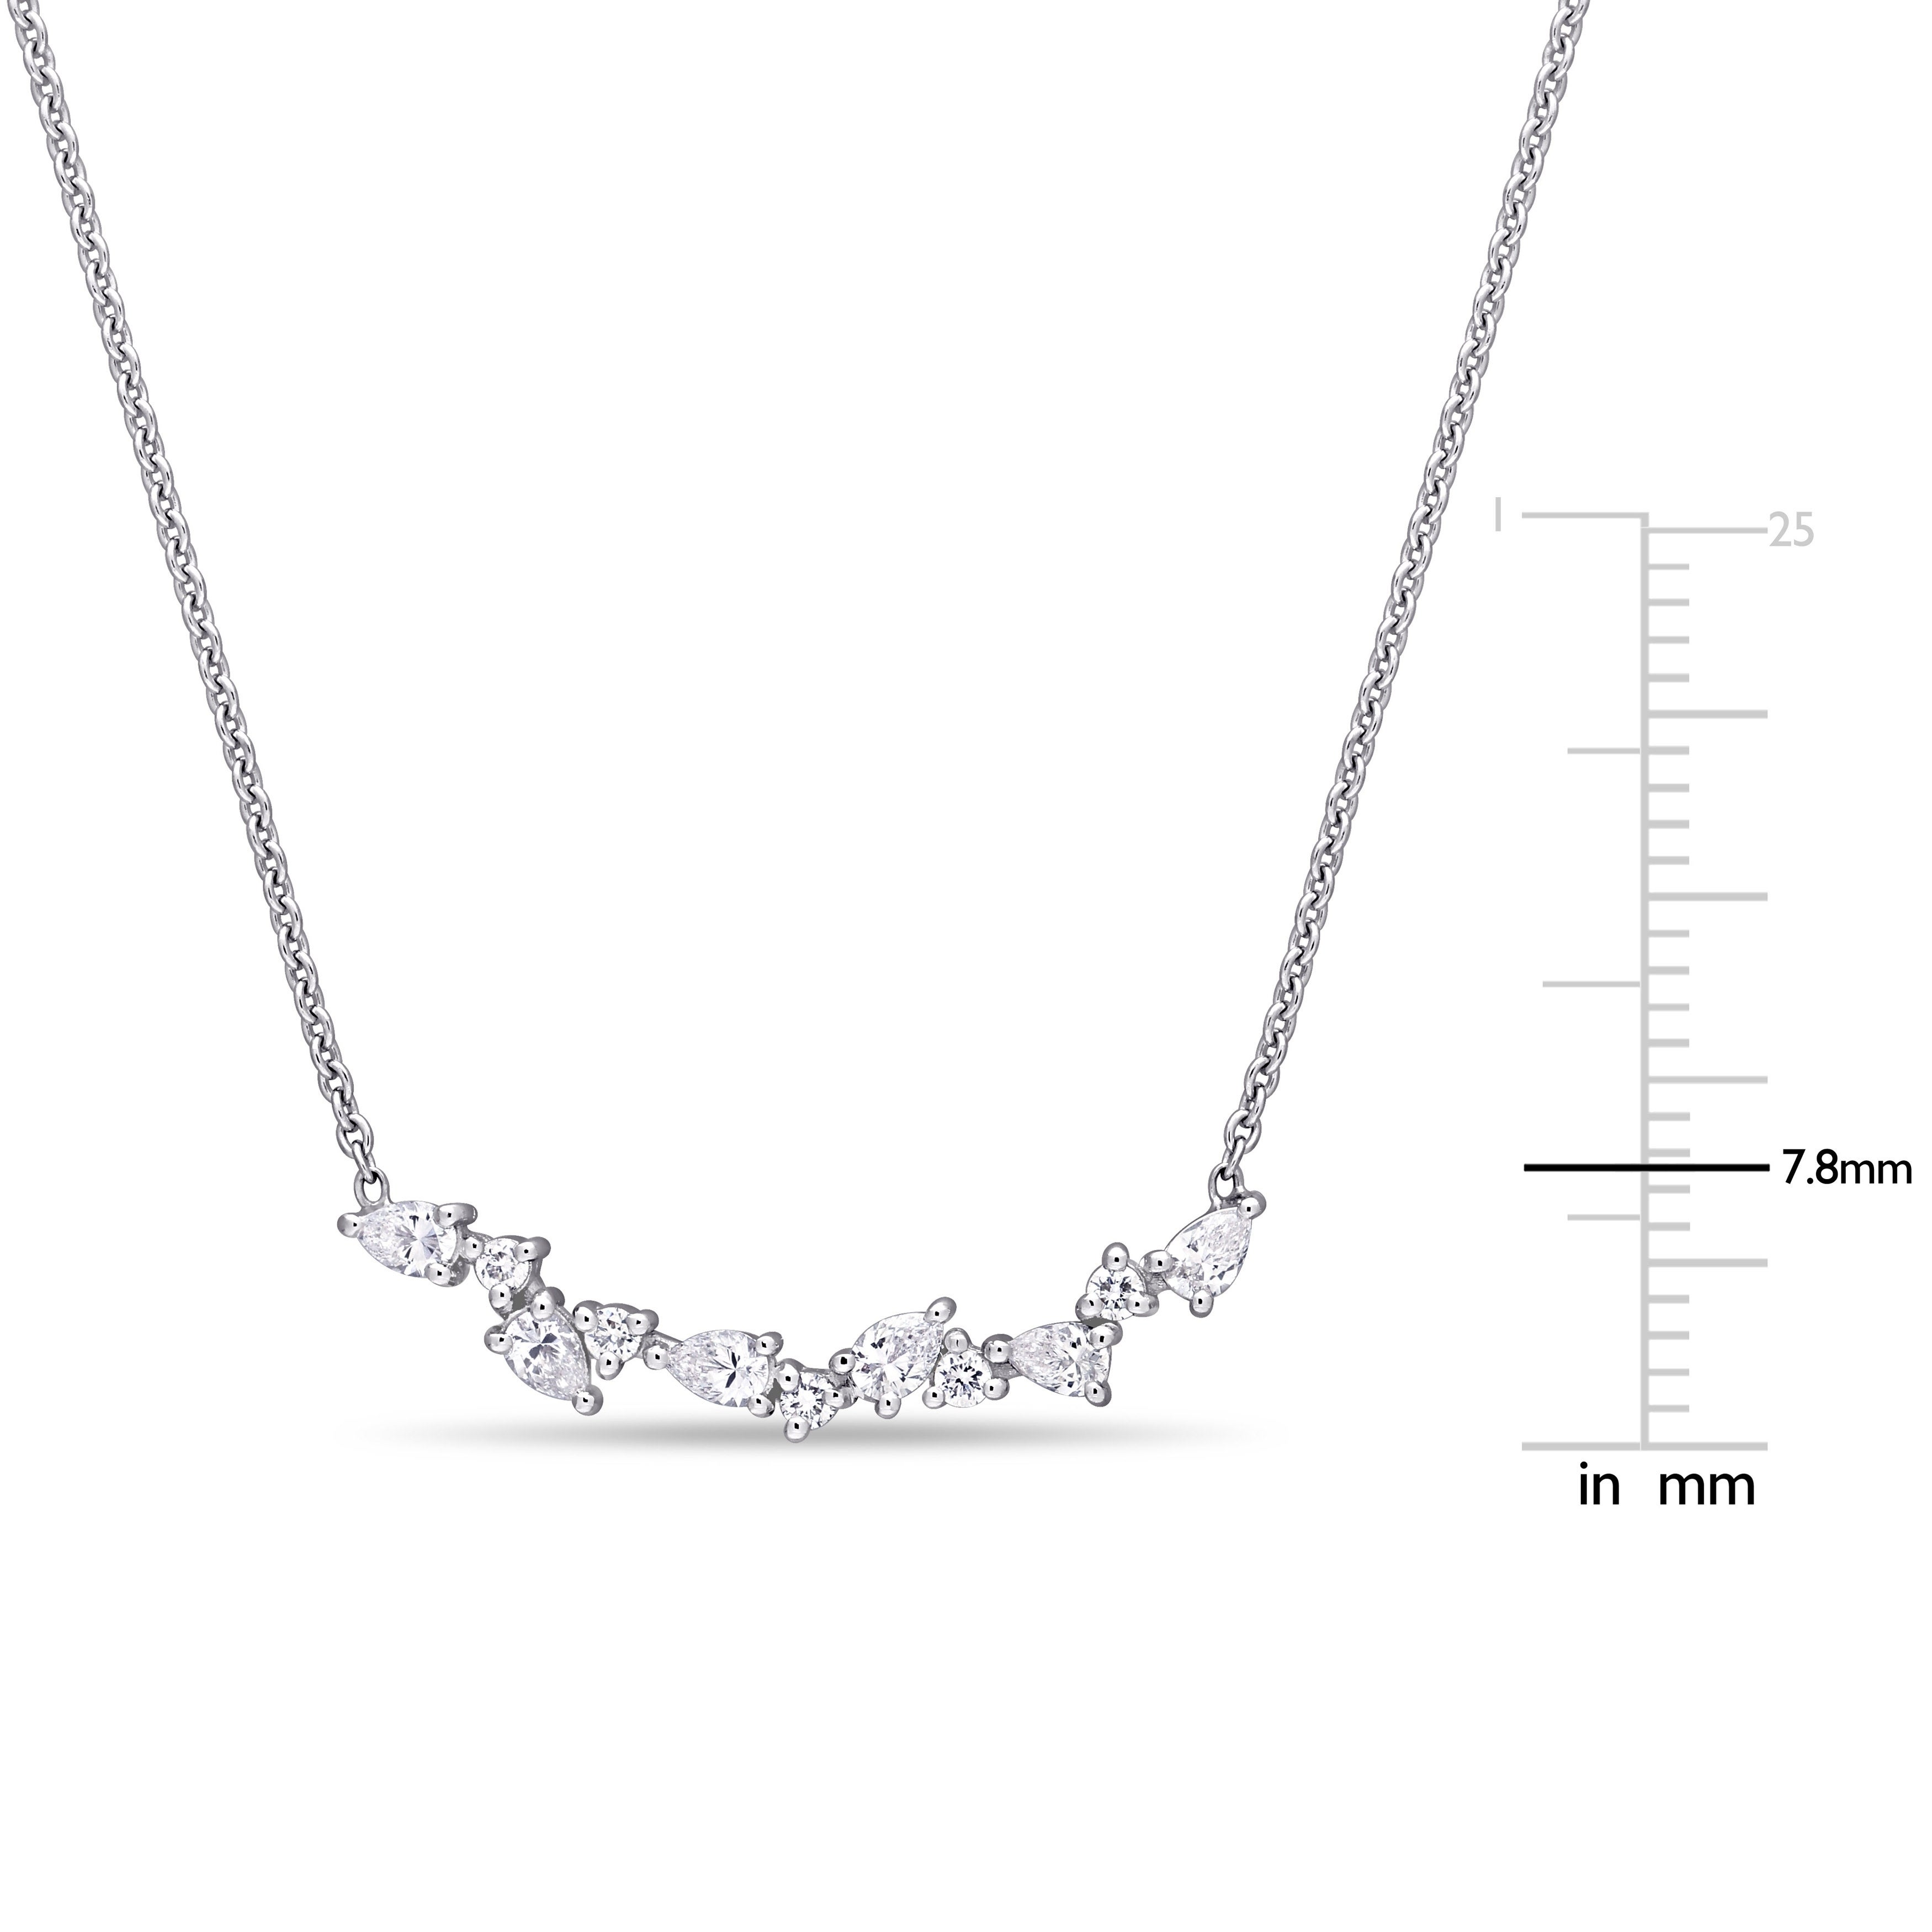 fdfafe4616b72 Miadora 14k White Gold 3/8ct TDW Pear and Round-cut Diamond Cluster Bar  Necklace